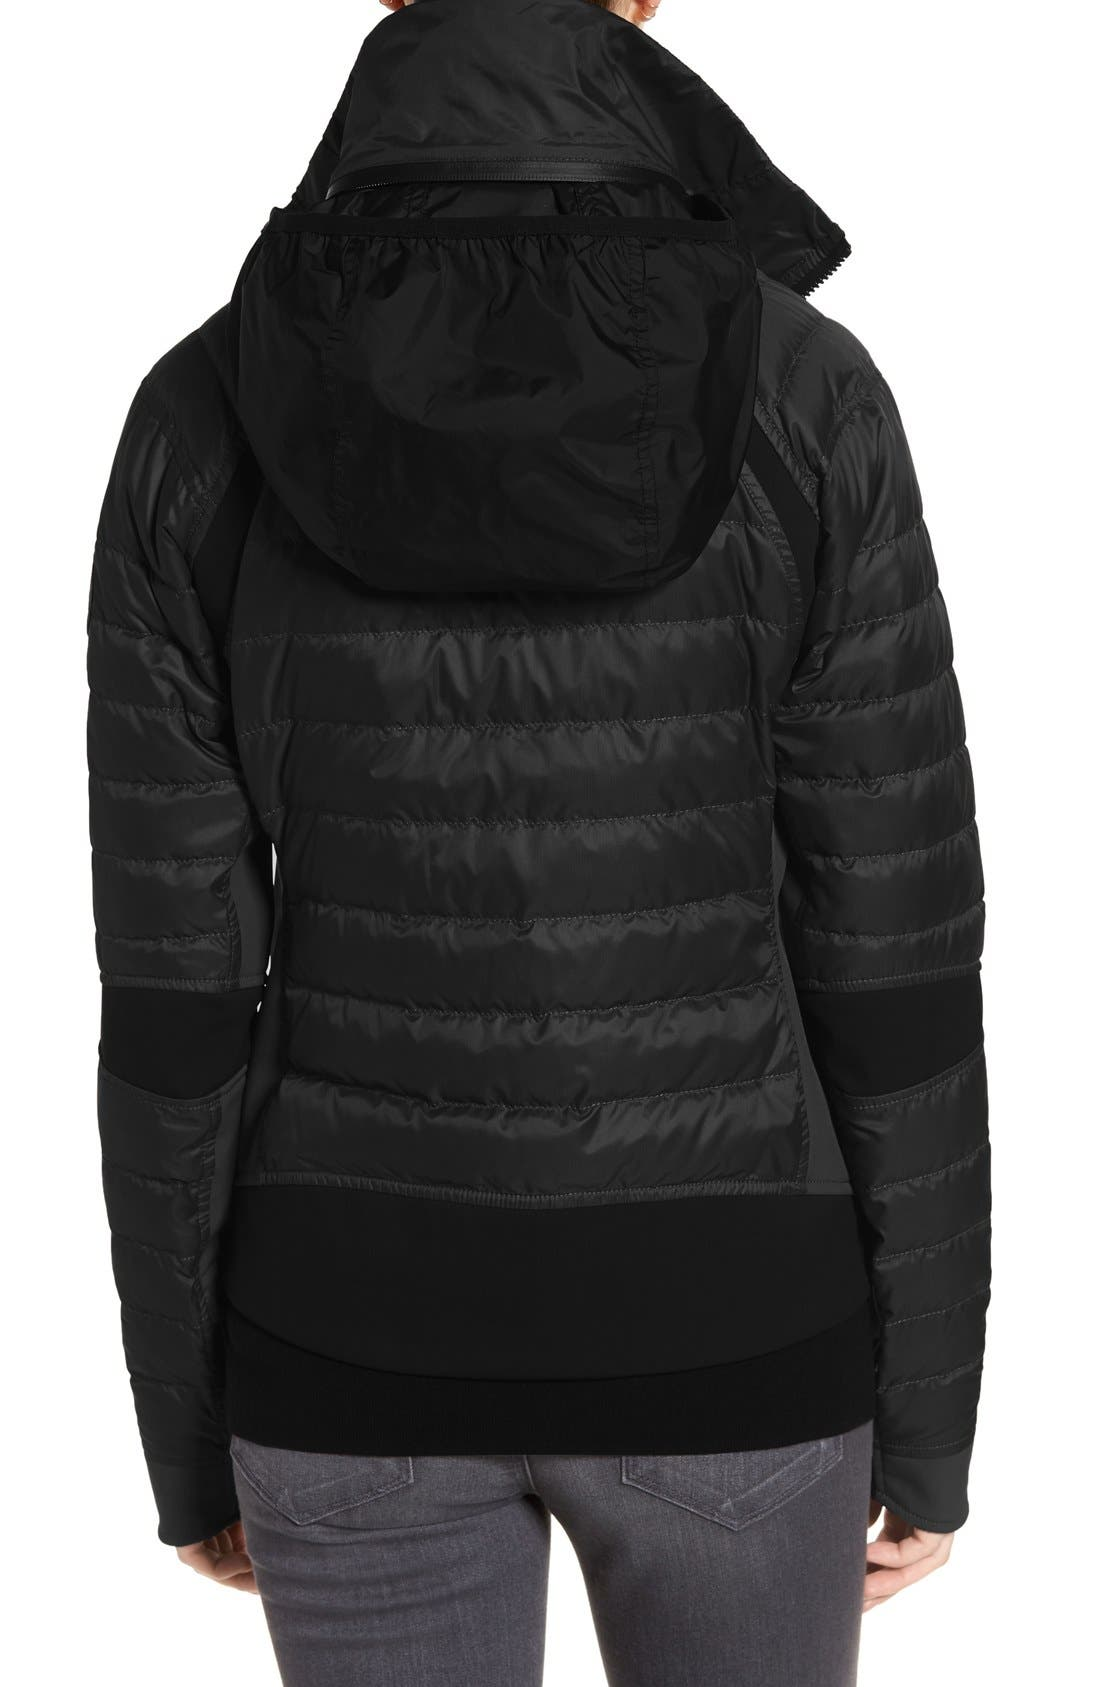 Hybridge Perren Jacket,                             Alternate thumbnail 3, color,                             BLACK